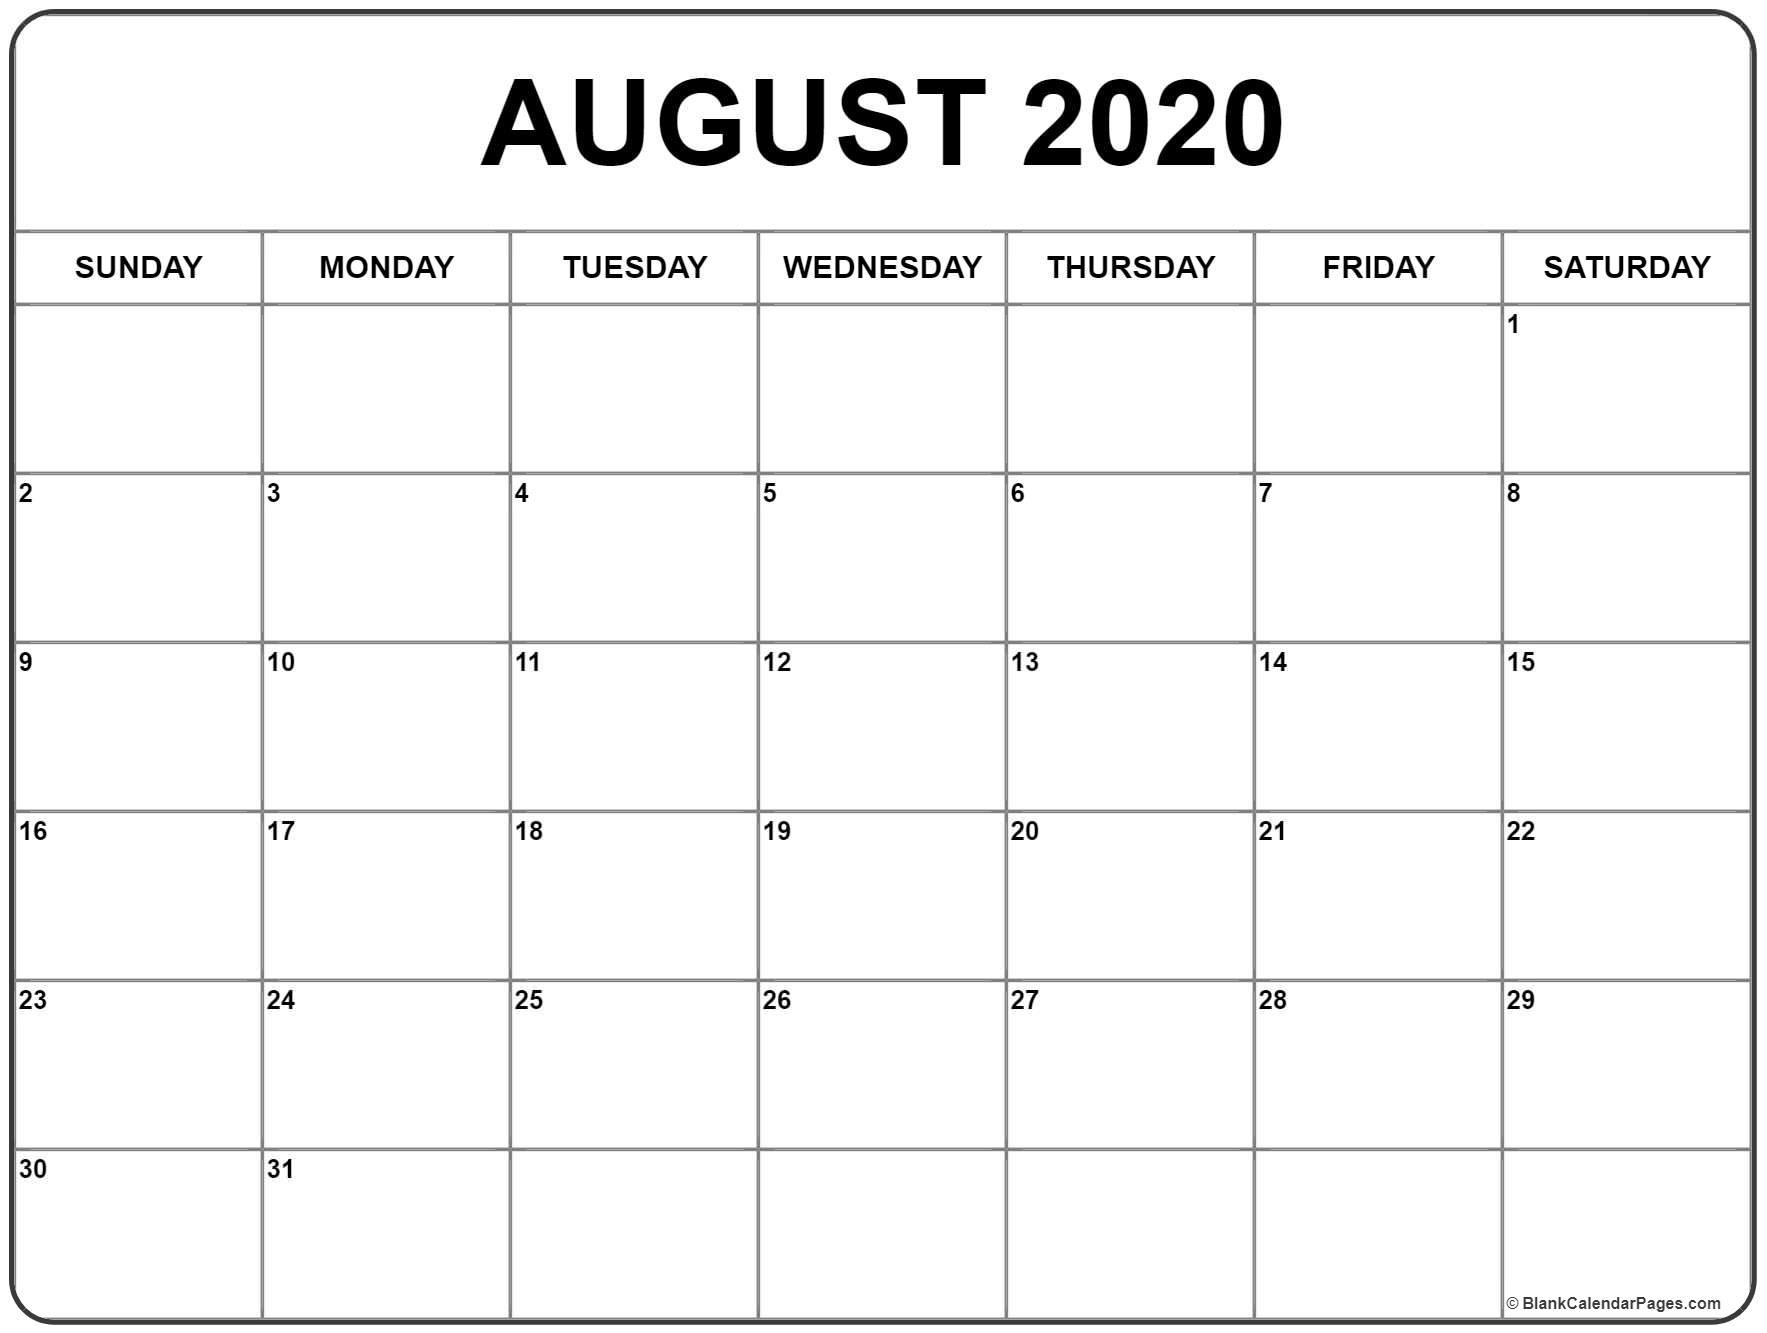 August 2020 Calendar | Free Printable Monthly Calendars in National Day Calendar 2020 Printable